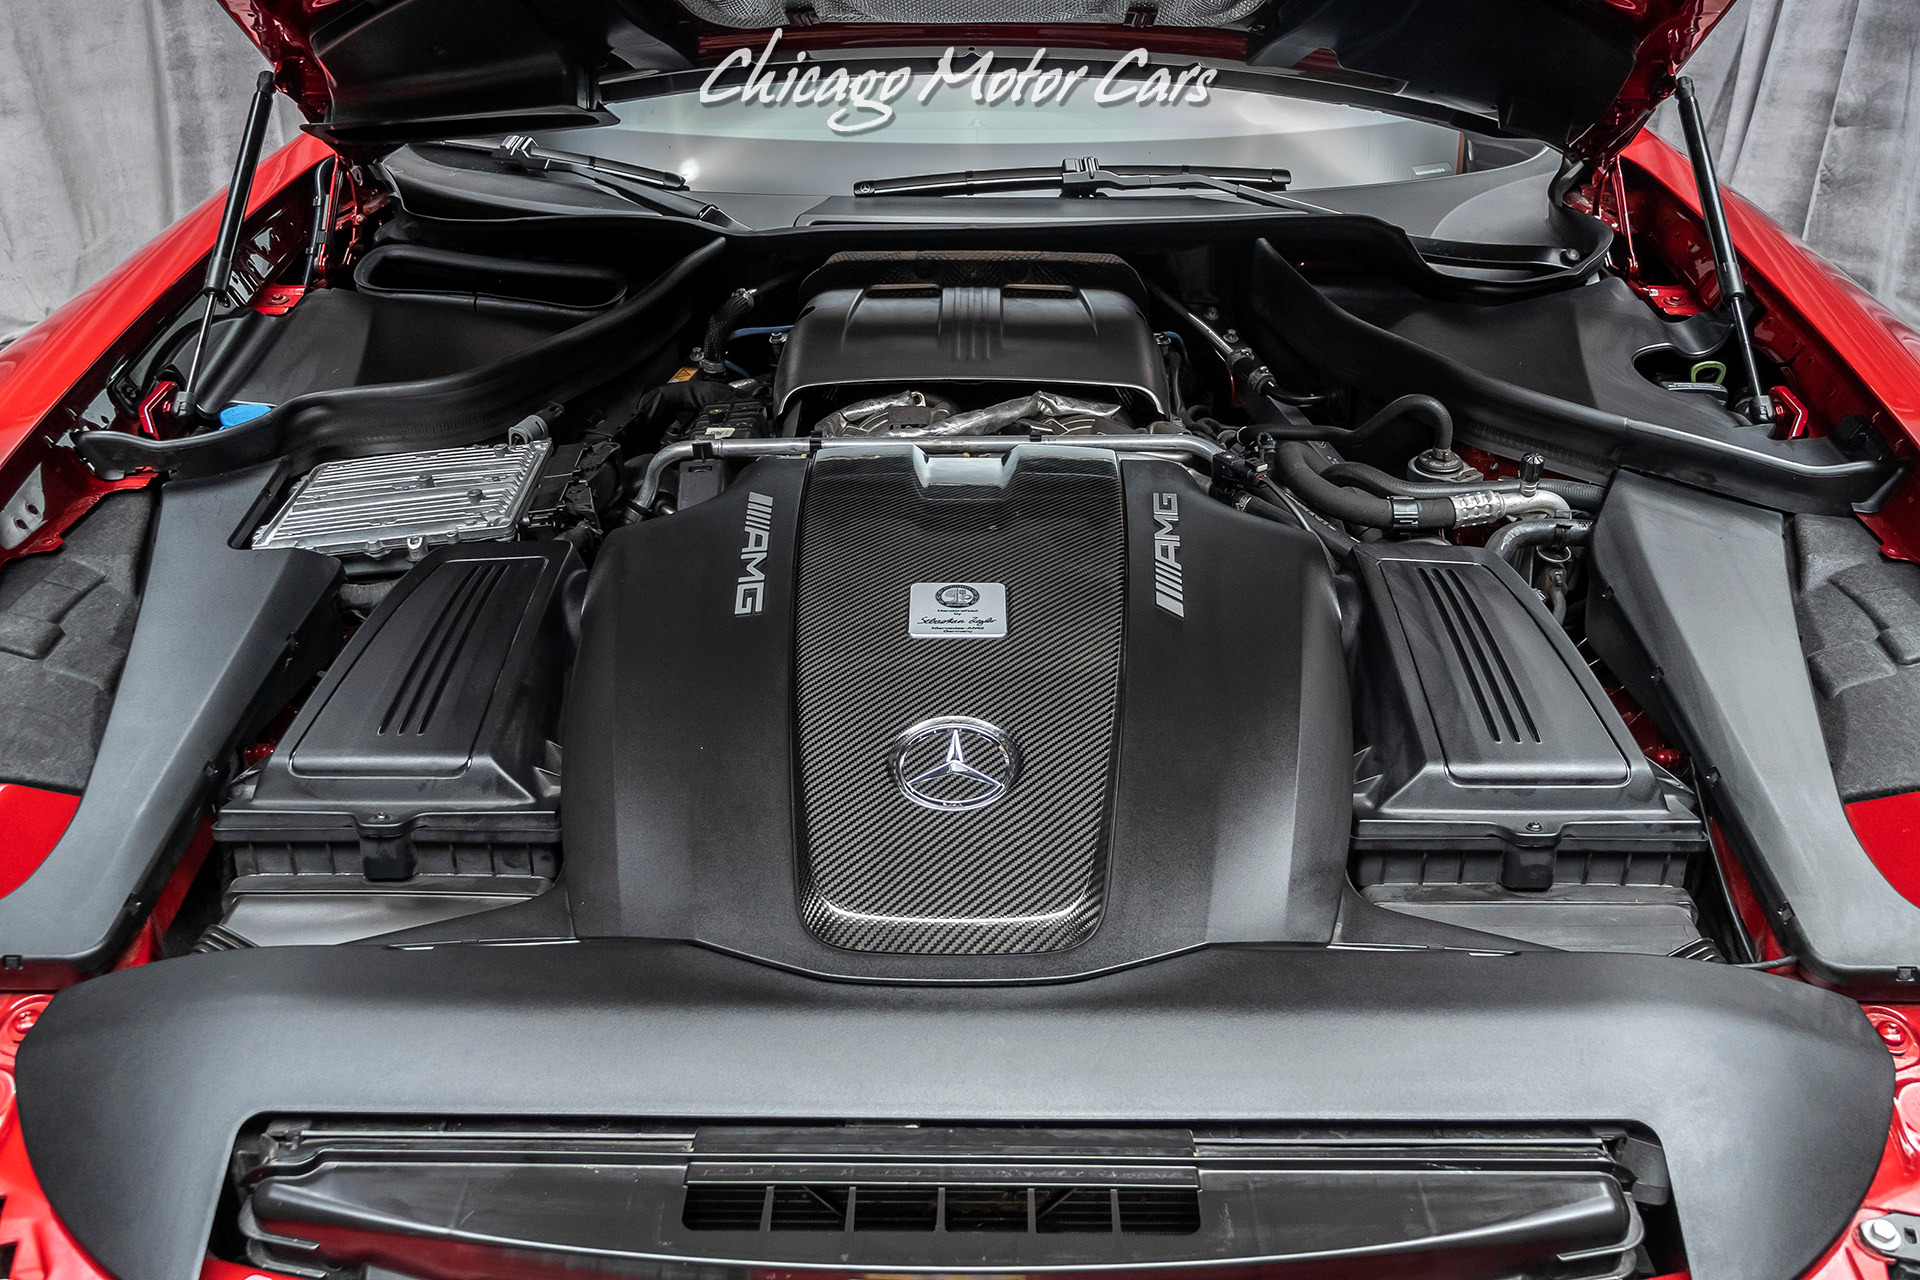 Used-2017-Mercedes-Benz-AMG-GT-S-RENNTECH-R2-CARBON-CERAMIC-K40-ONLY-14K-MILES